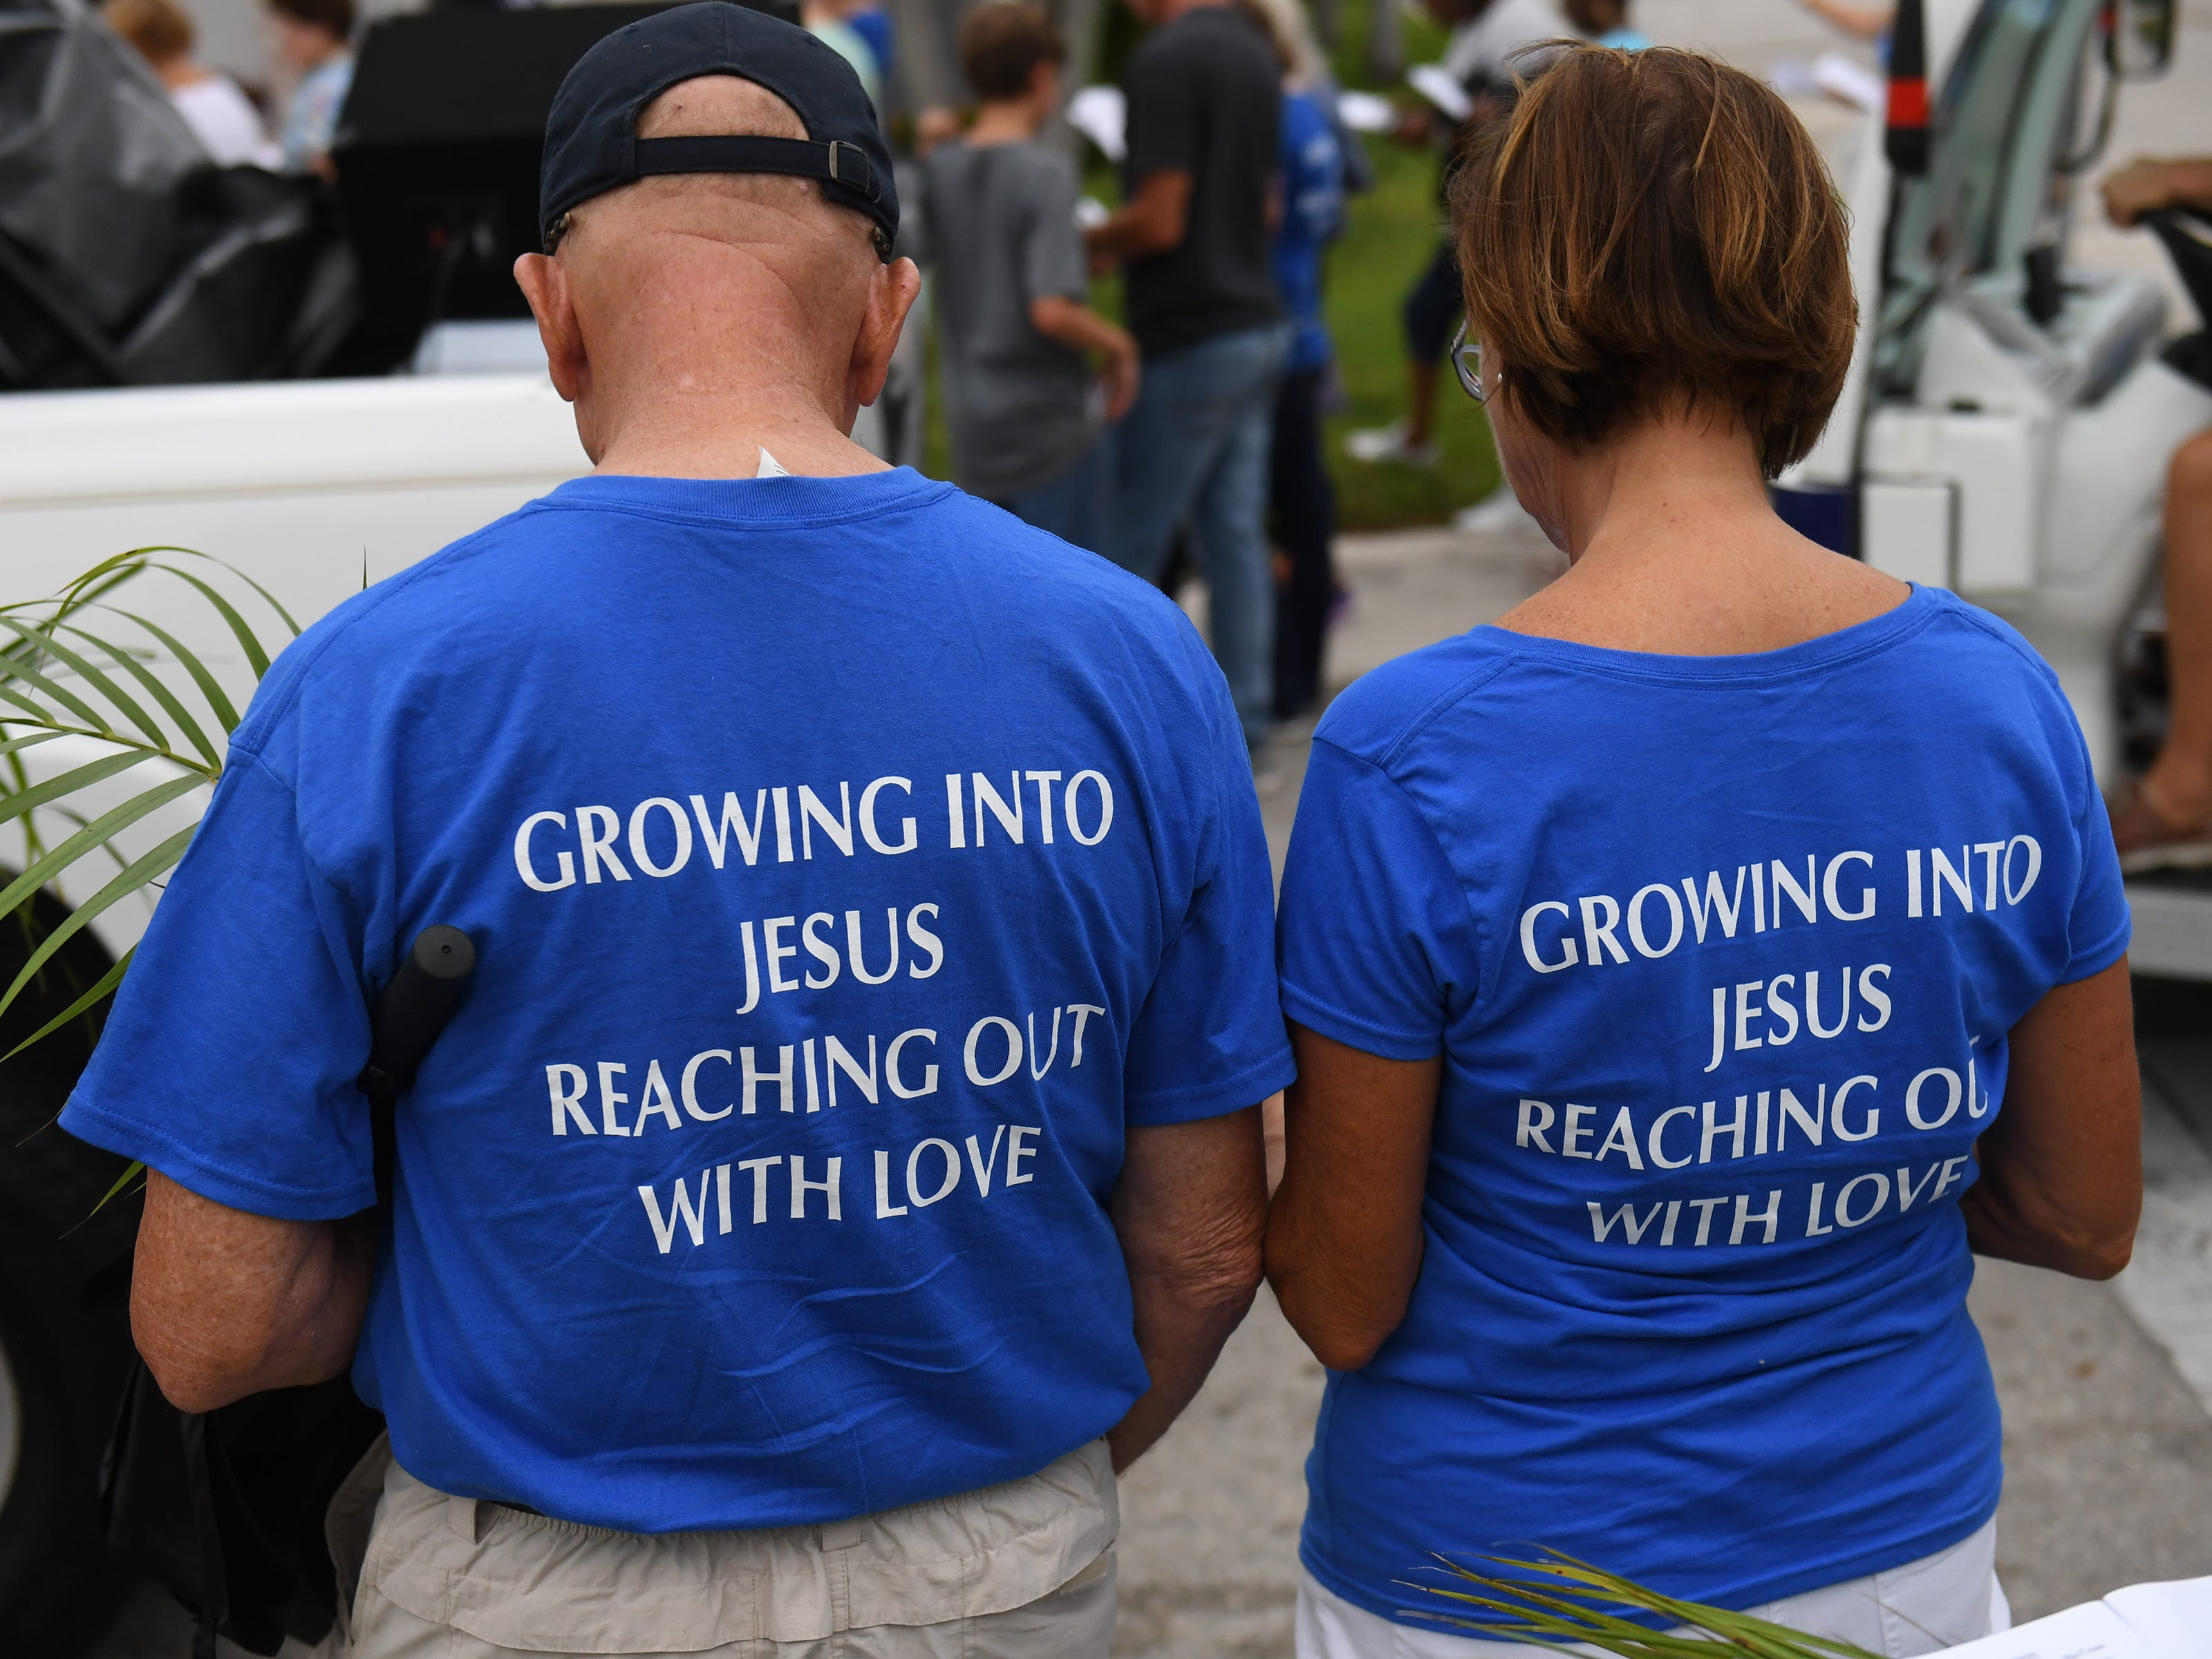 Third annual Neighborhood Stations of the Cross prayer walk on Palm Sunday, April 14, 2019, in Stuart. Christians from more than ten area churches walked through streets in Stuart singing and praying, stopping to pray and recite scripture at ten locations, carrying the cross from St. Monica's Episcopal Church in East Stuart to St. Mary's Episcopal Church on Ocean Boulevard.